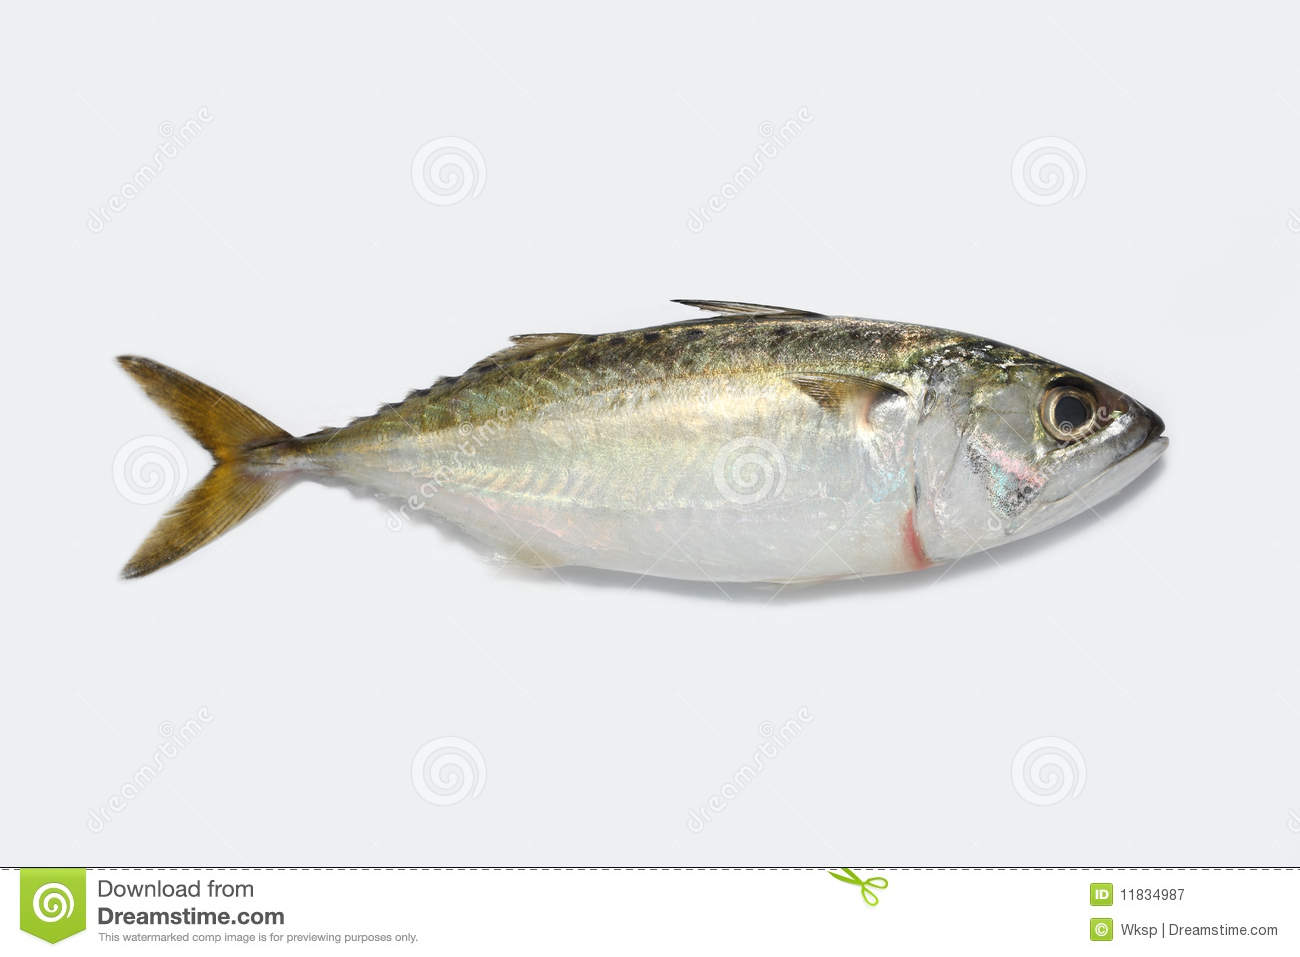 Kembong fish stock image image of fresh tail kembong for Image of fish